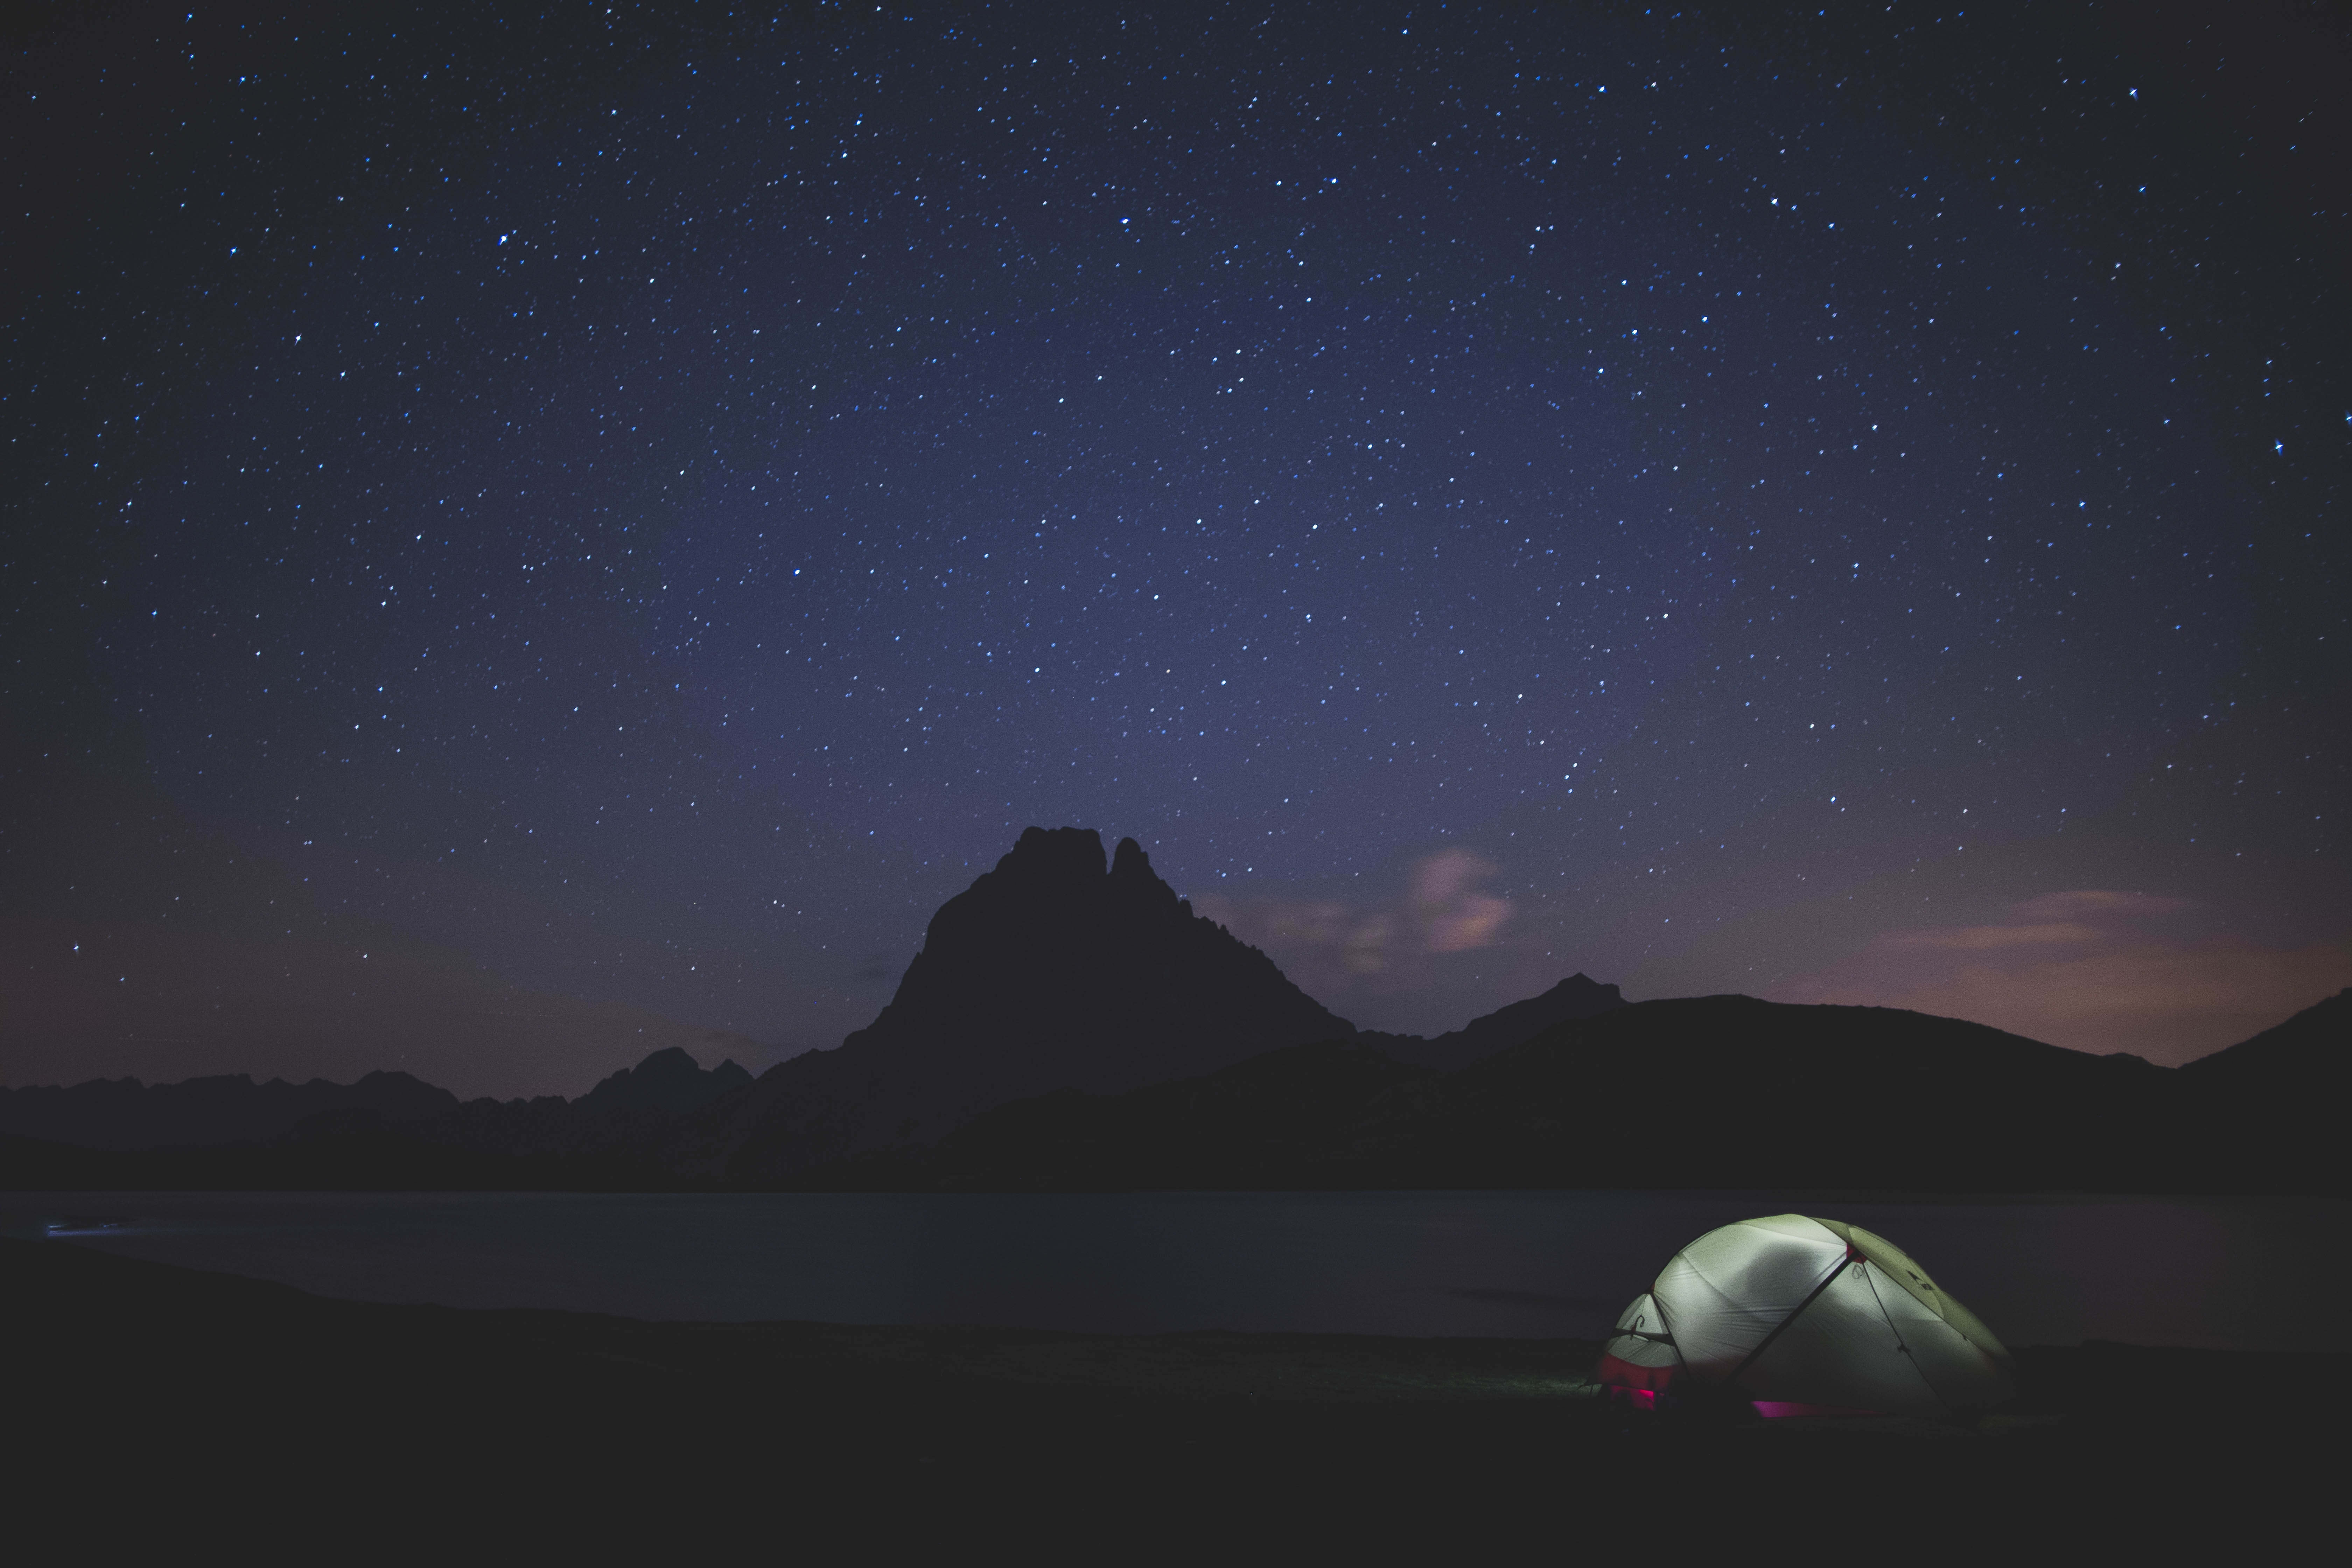 silhouette photography of mountain under cluster of stars